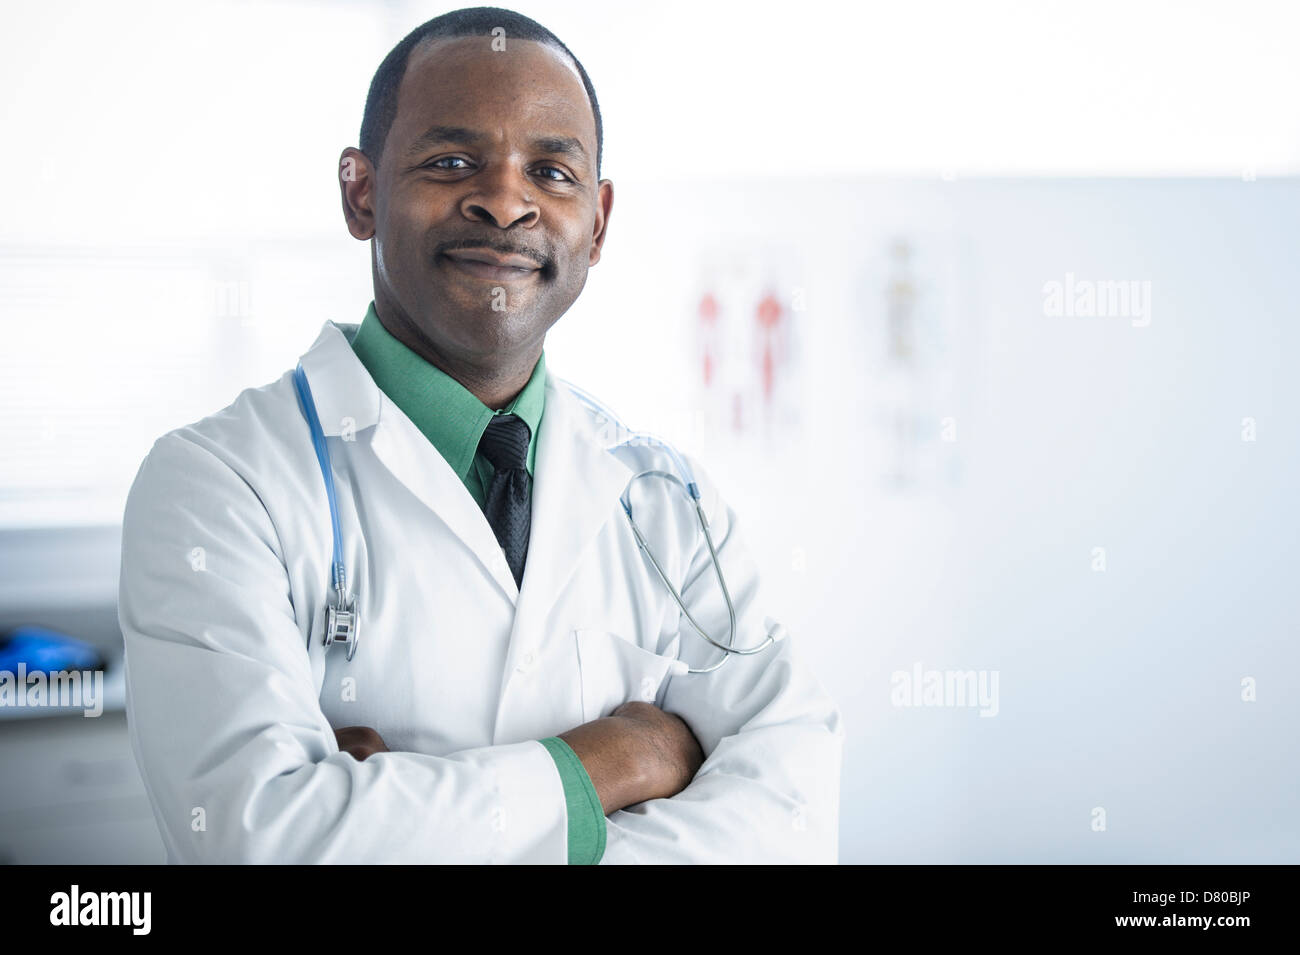 African American doctor smiling in office Banque D'Images